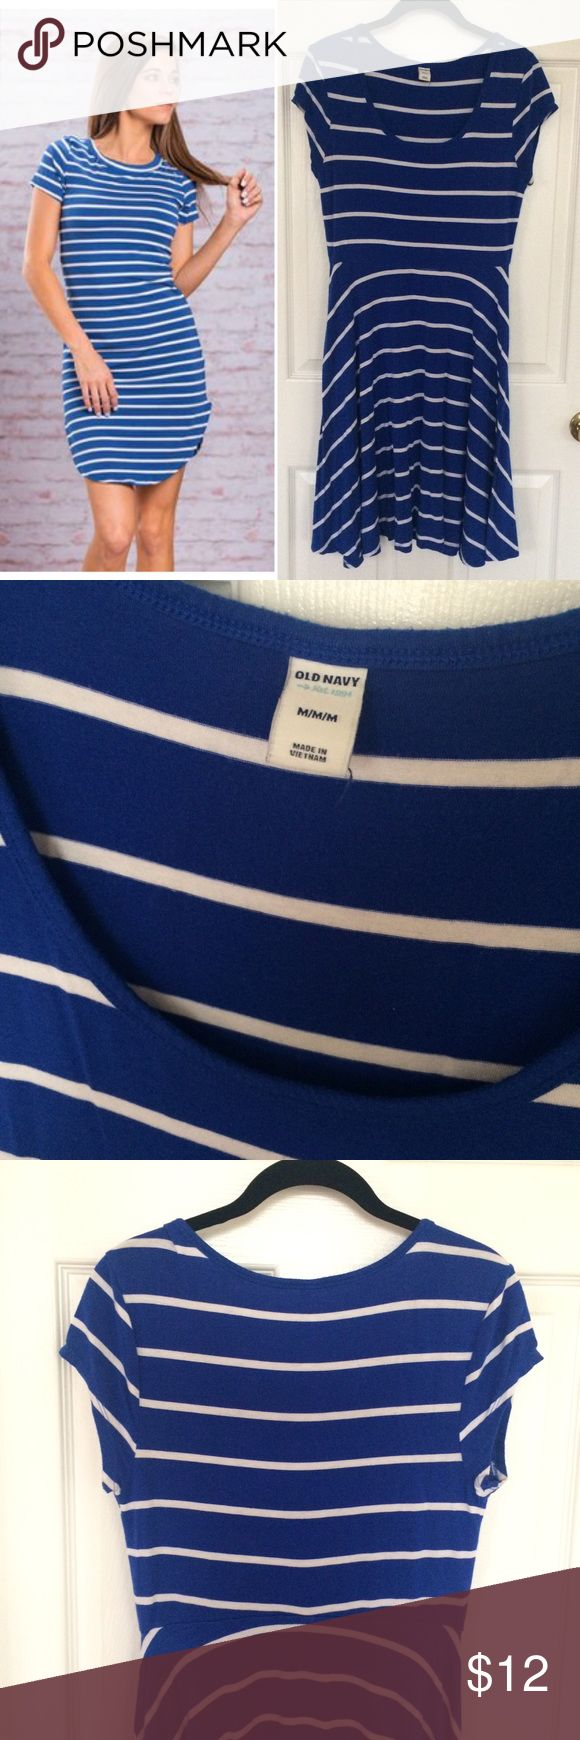 Old Navy Striped Dress Gently worn, in great condition! Royal blue with white stripes. Very soft and comfy! The neck is rounded and dips a bit in the front. A go-to dress for spring! 🎀 Outfit Inspiration by Pinterest 🎀 Old Navy Dresses Midi